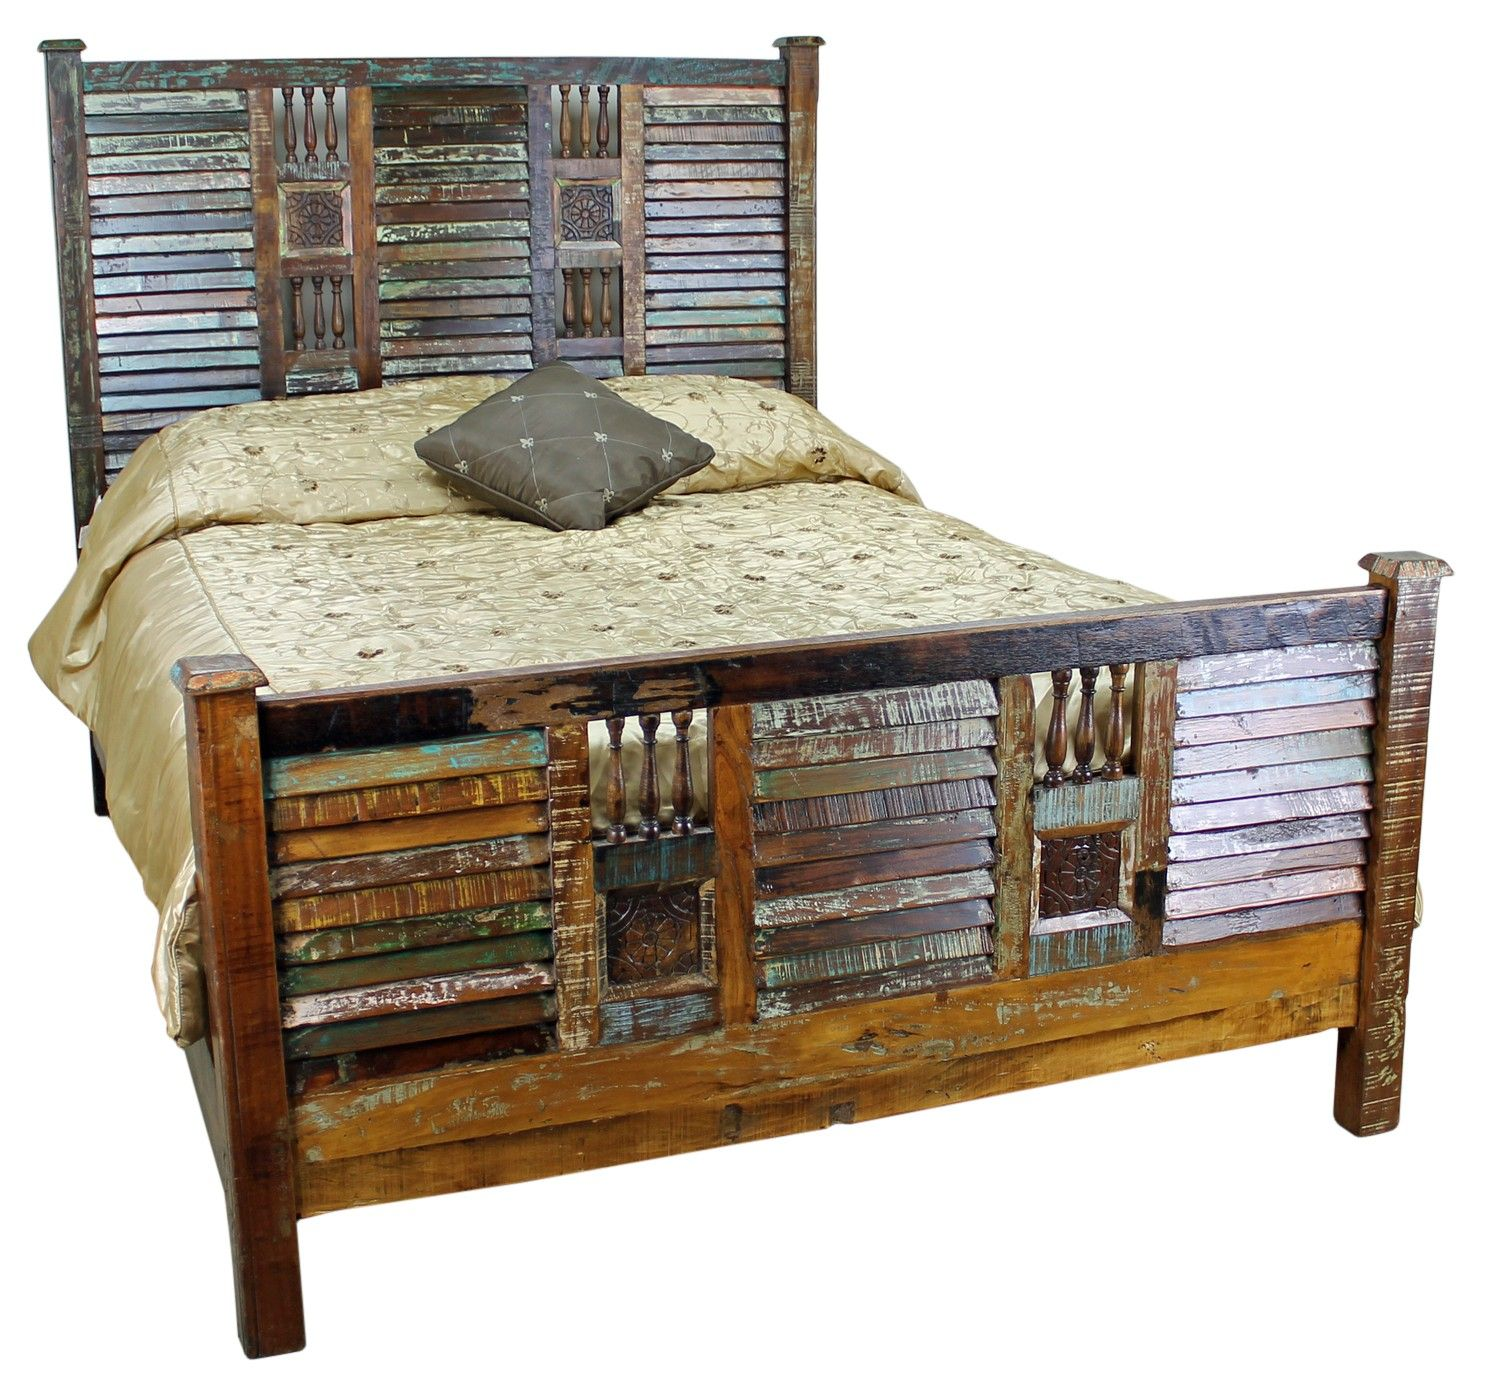 Wooden bed furniture design - Mexicali Rustic Wood Bed Set Furniture